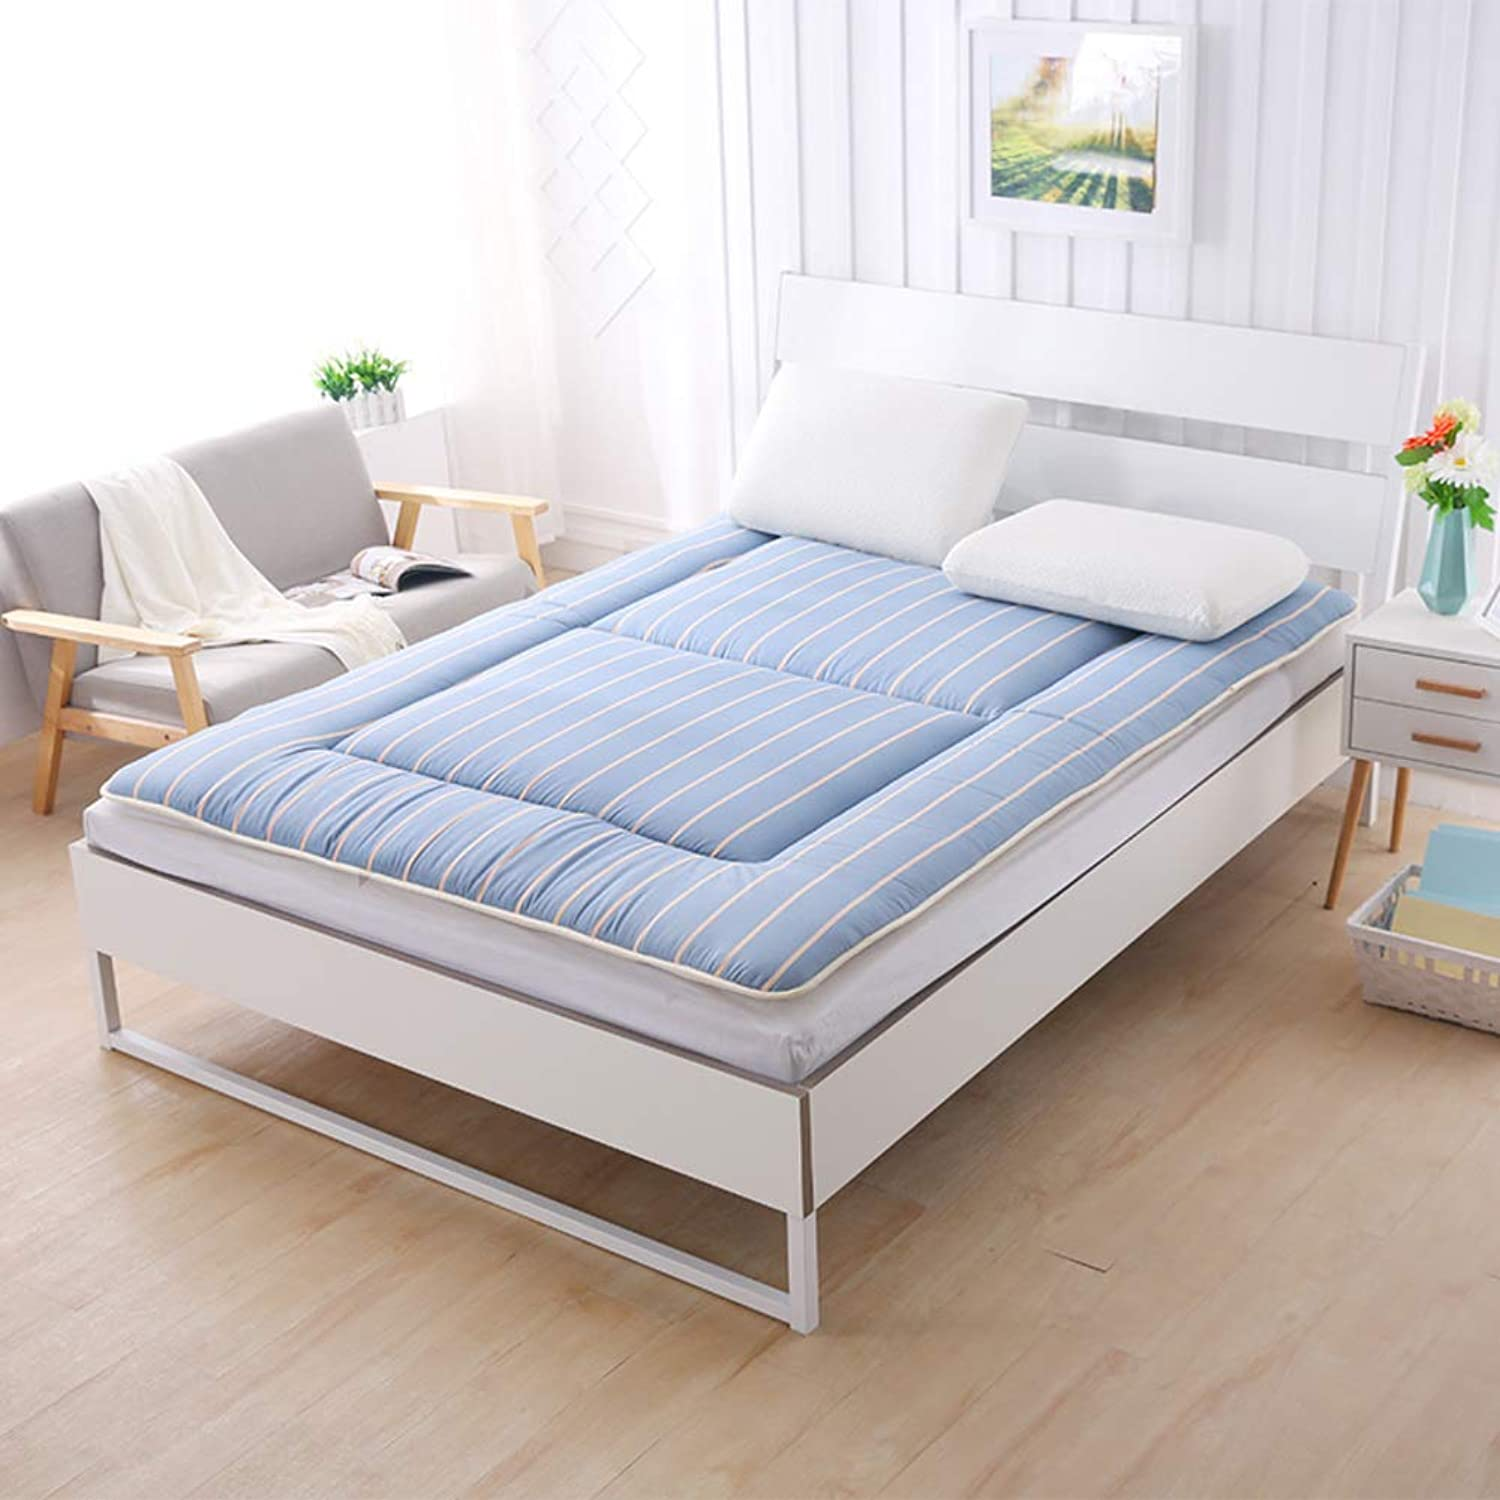 Breathable Japanese Traditional futon Mattress,Ultra Soft Portable Non-Slip Floor mat Sleeping pad Student Dormitory-bluee Queen 150x200cm